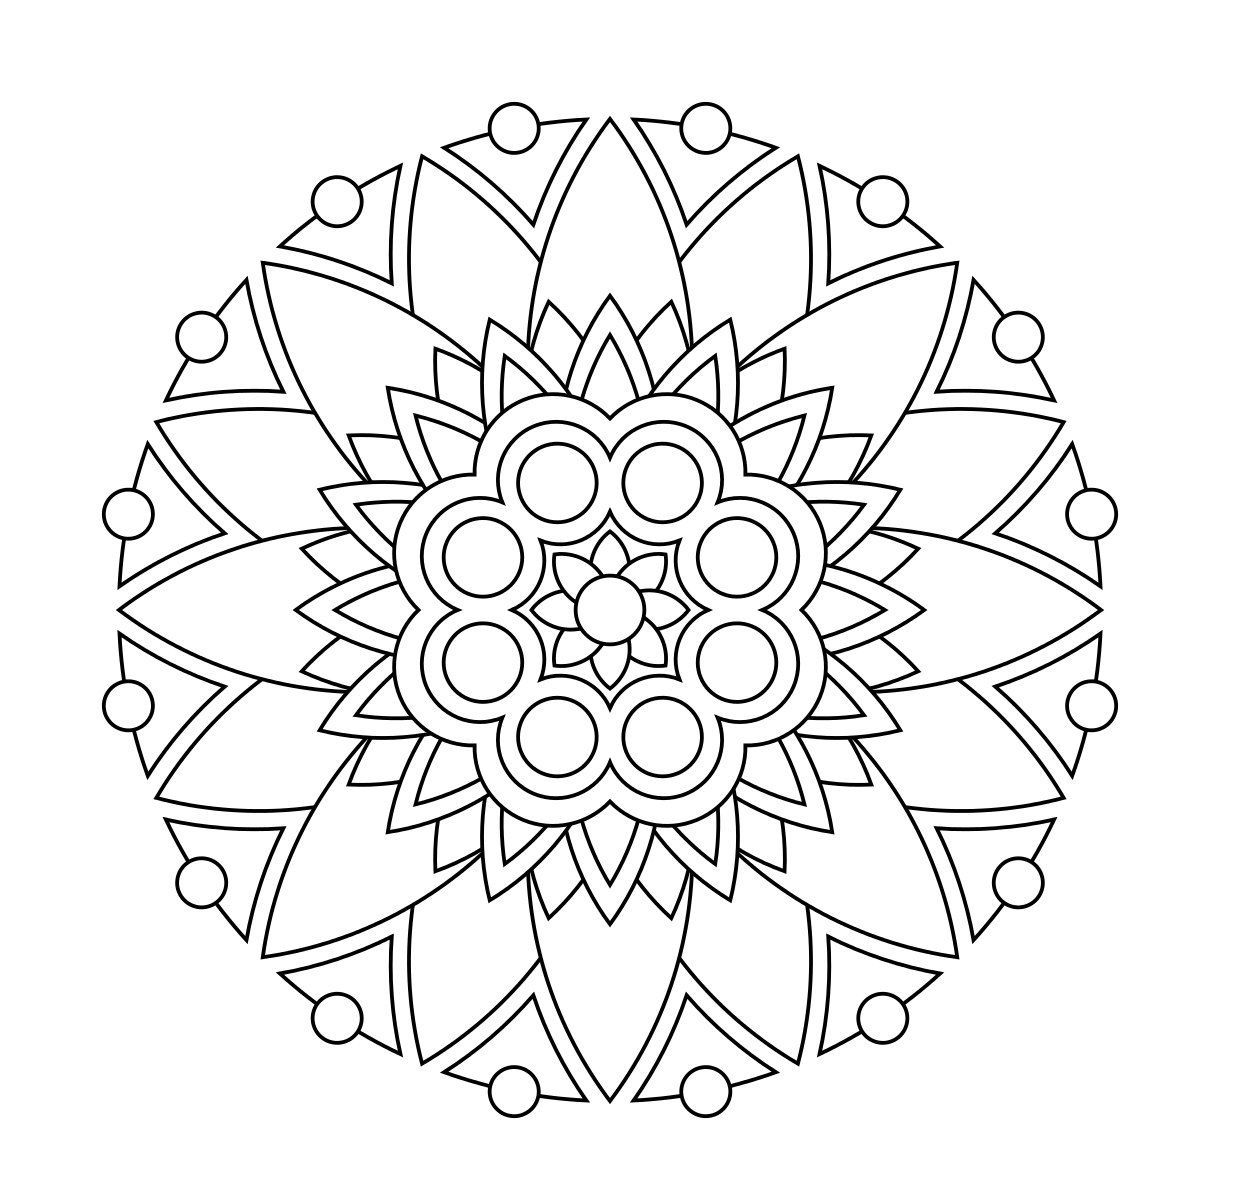 Coloring book adult meditation stress - More Printable Coloring Mandalas For Stress Relief